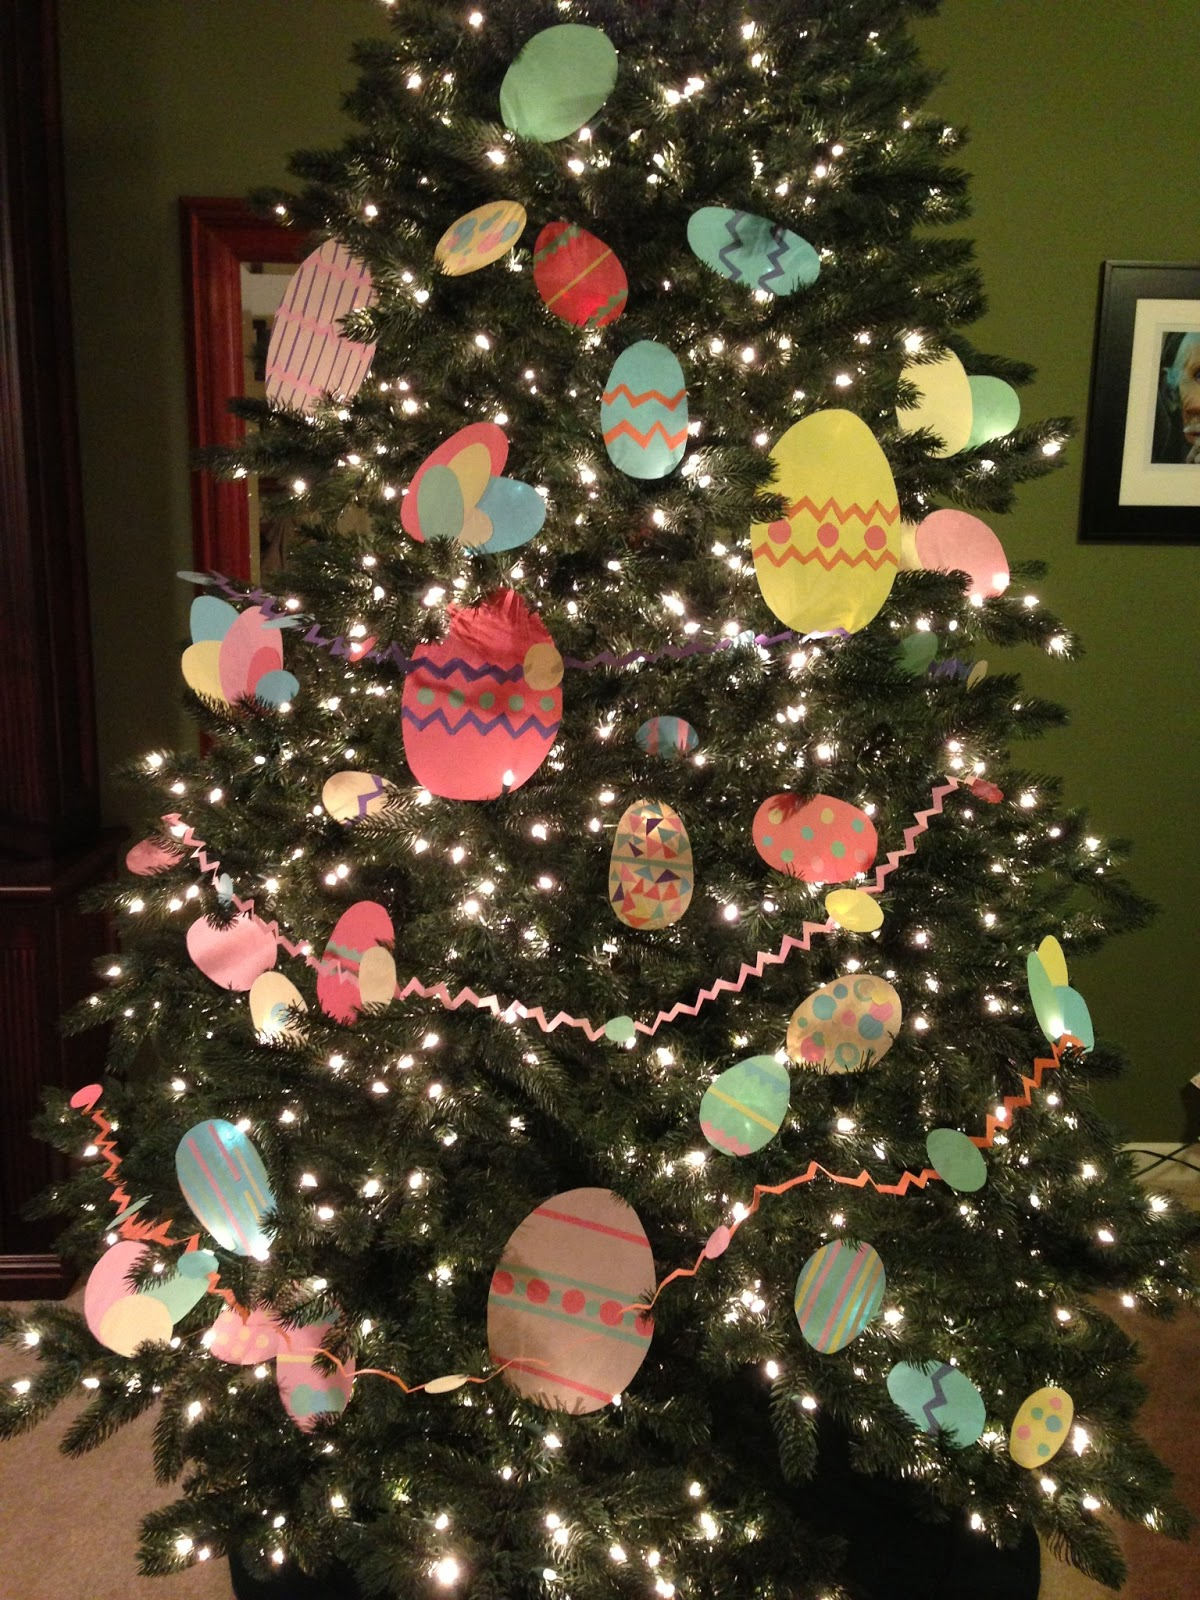 Decorate Christmas Tree For Easter : The bluest muse easter egg tree